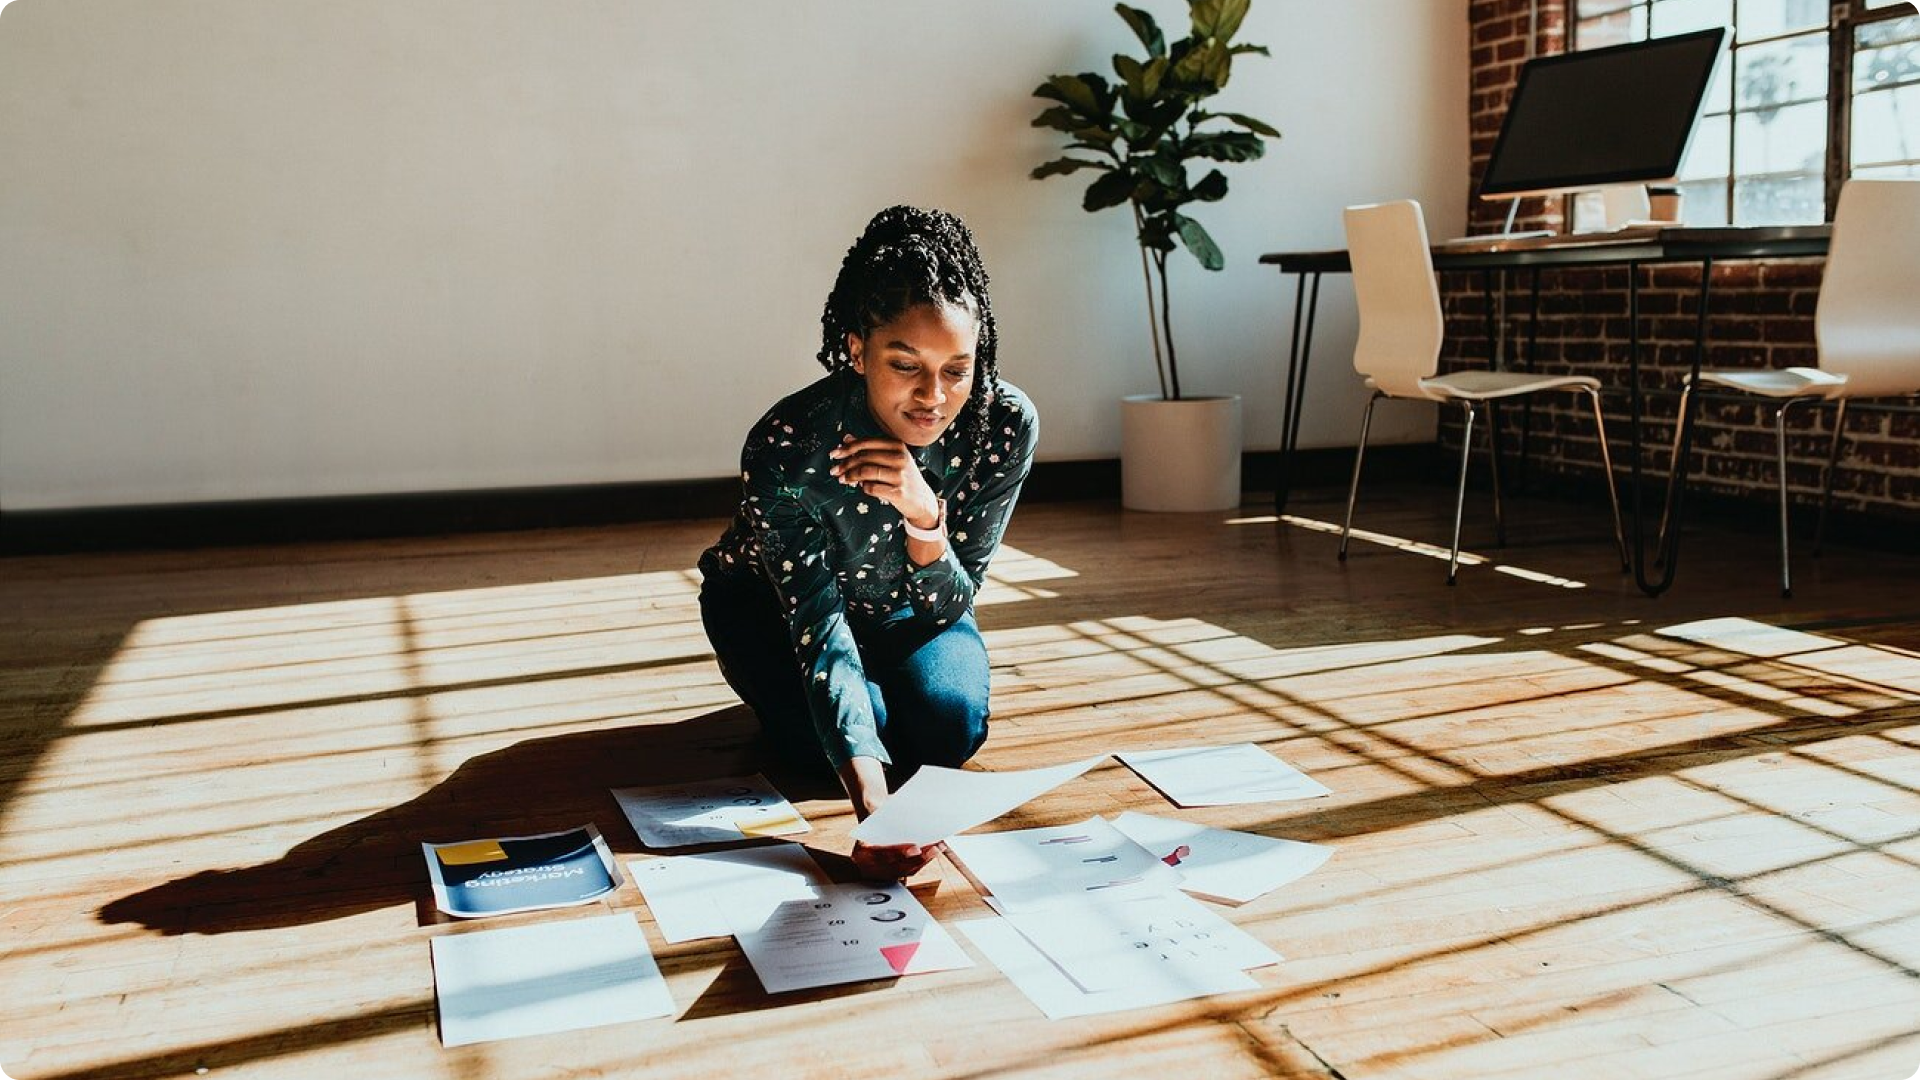 Woman looking at work and design papers on the floor in a well-lit office